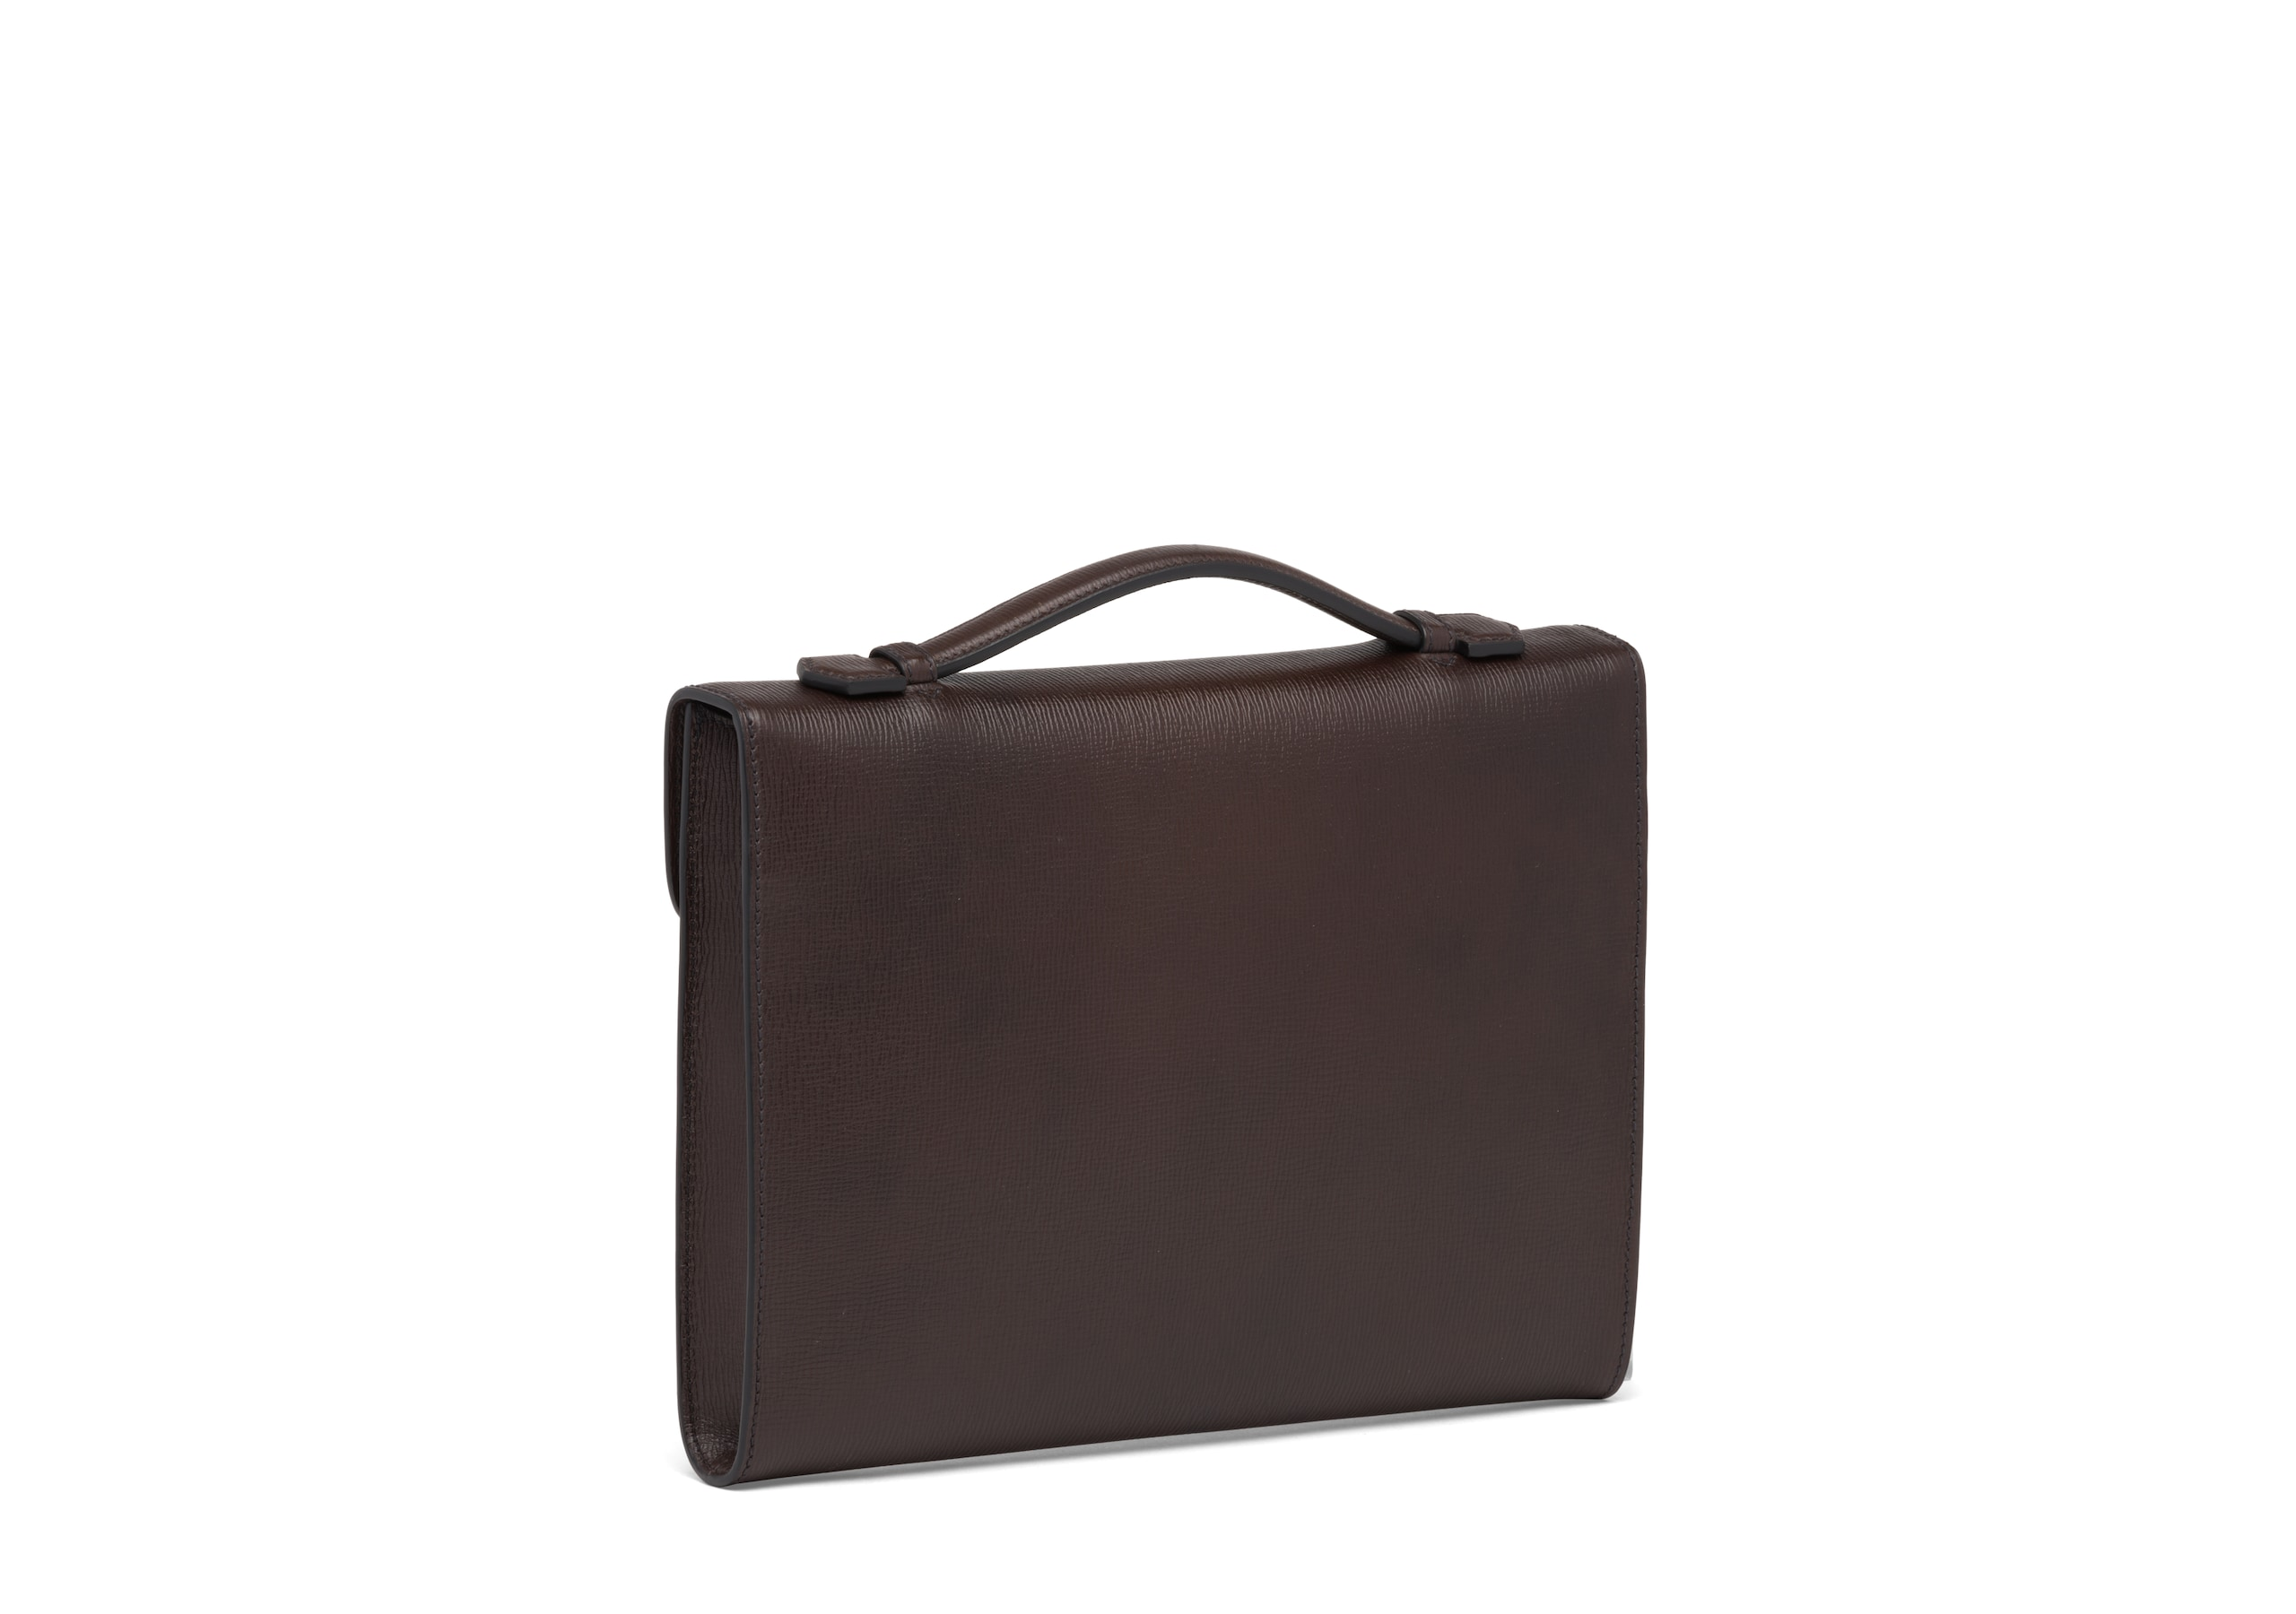 Crawford Church's St James Leather Document Holder Brown